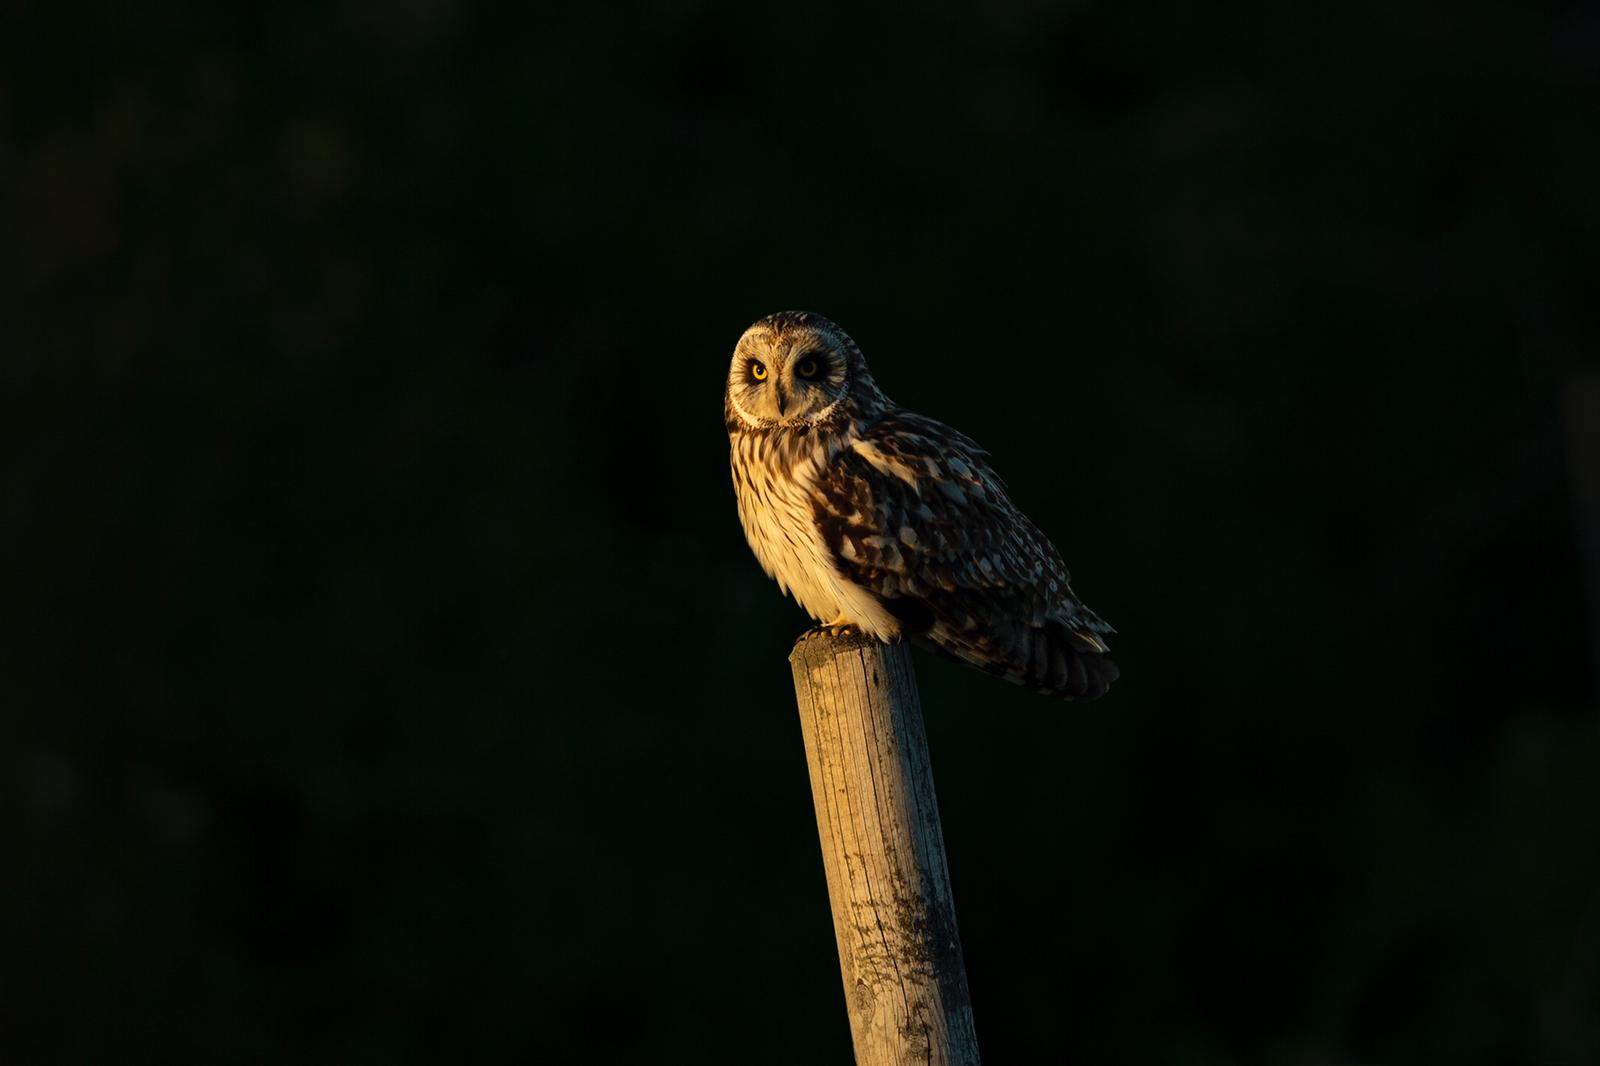 Short-eared Owl on the watch out in the dark nights by Piet van den Bemd.